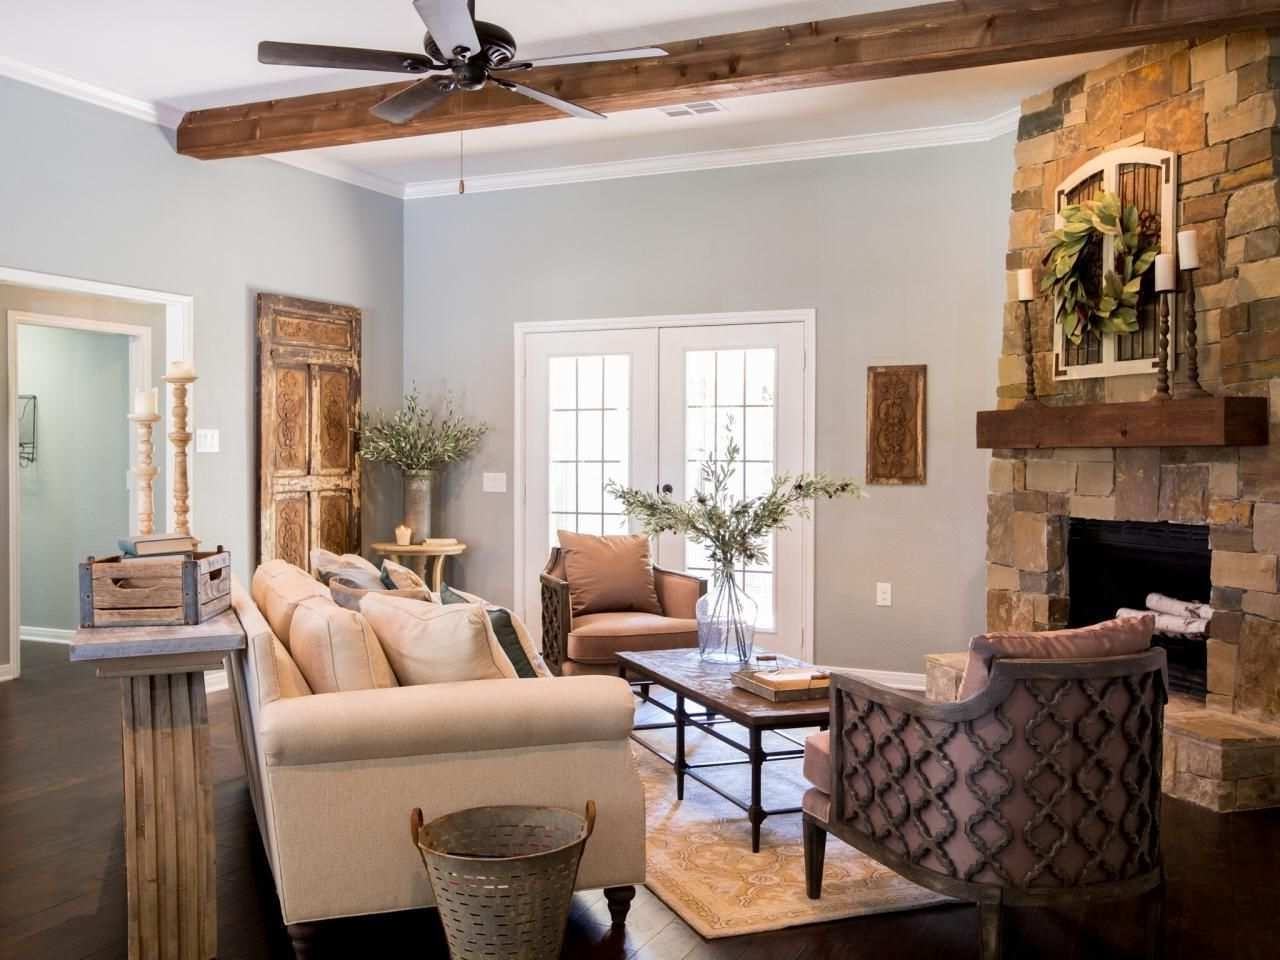 Joanna Gaines Ceiling Fans Beautiful Fixer Upper Yours Mine Ours And For Favorite Joanna Gaines Outdoor Ceiling Fans (View 6 of 20)